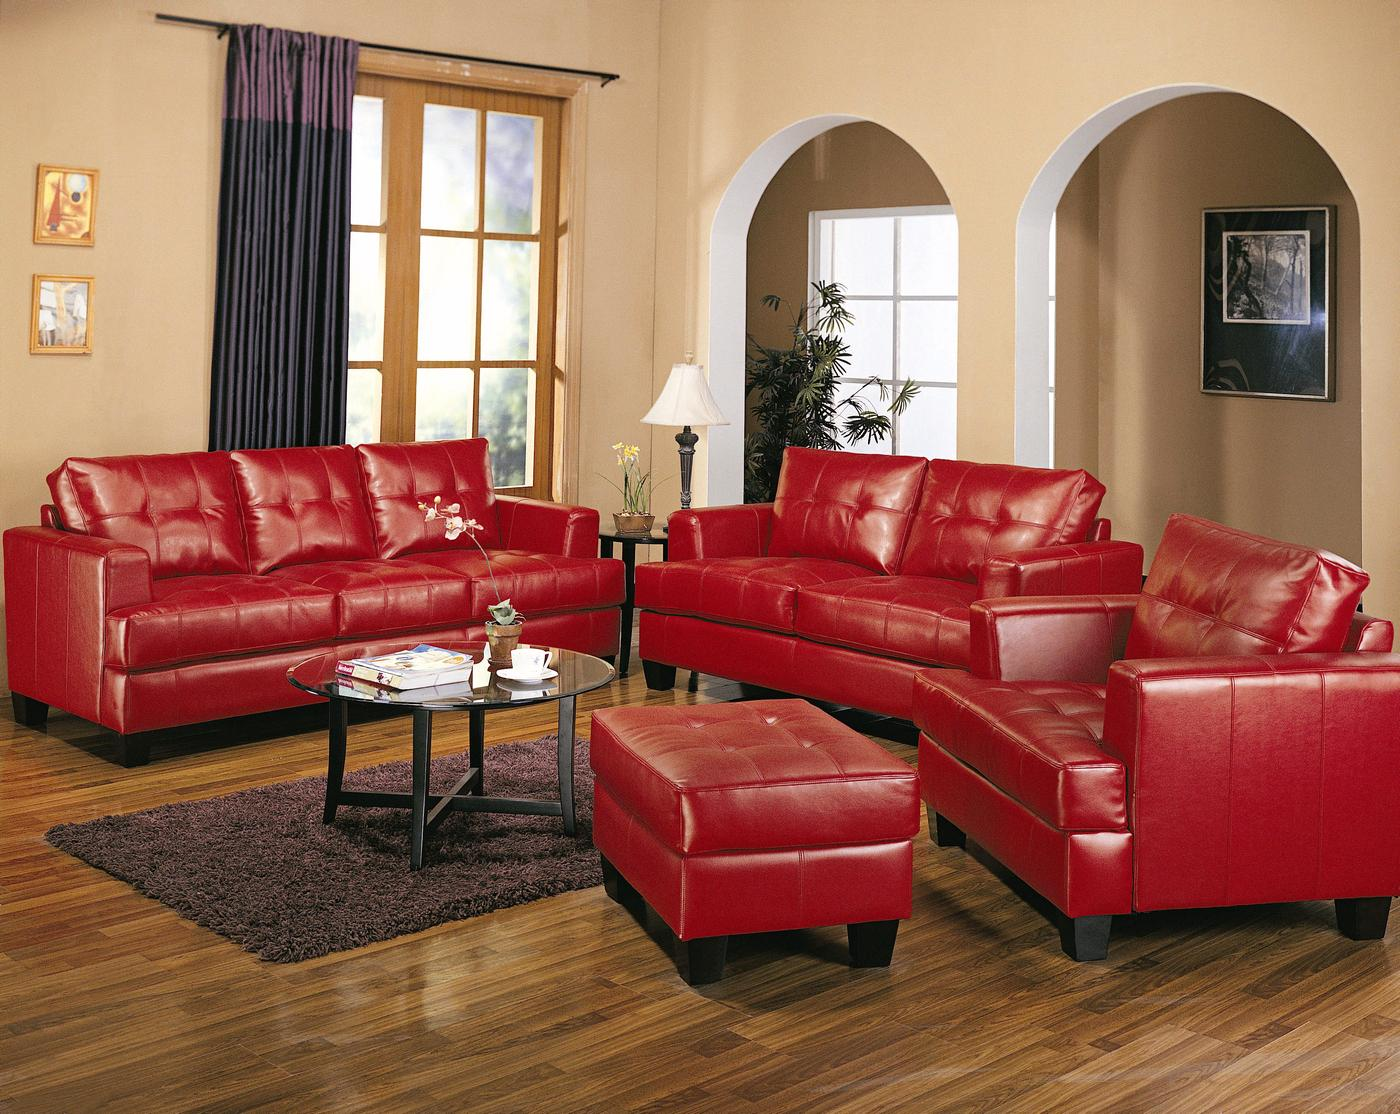 Samuel red bonded leather sofa and love seat living room set - Living room furniture leather and upholstery ...